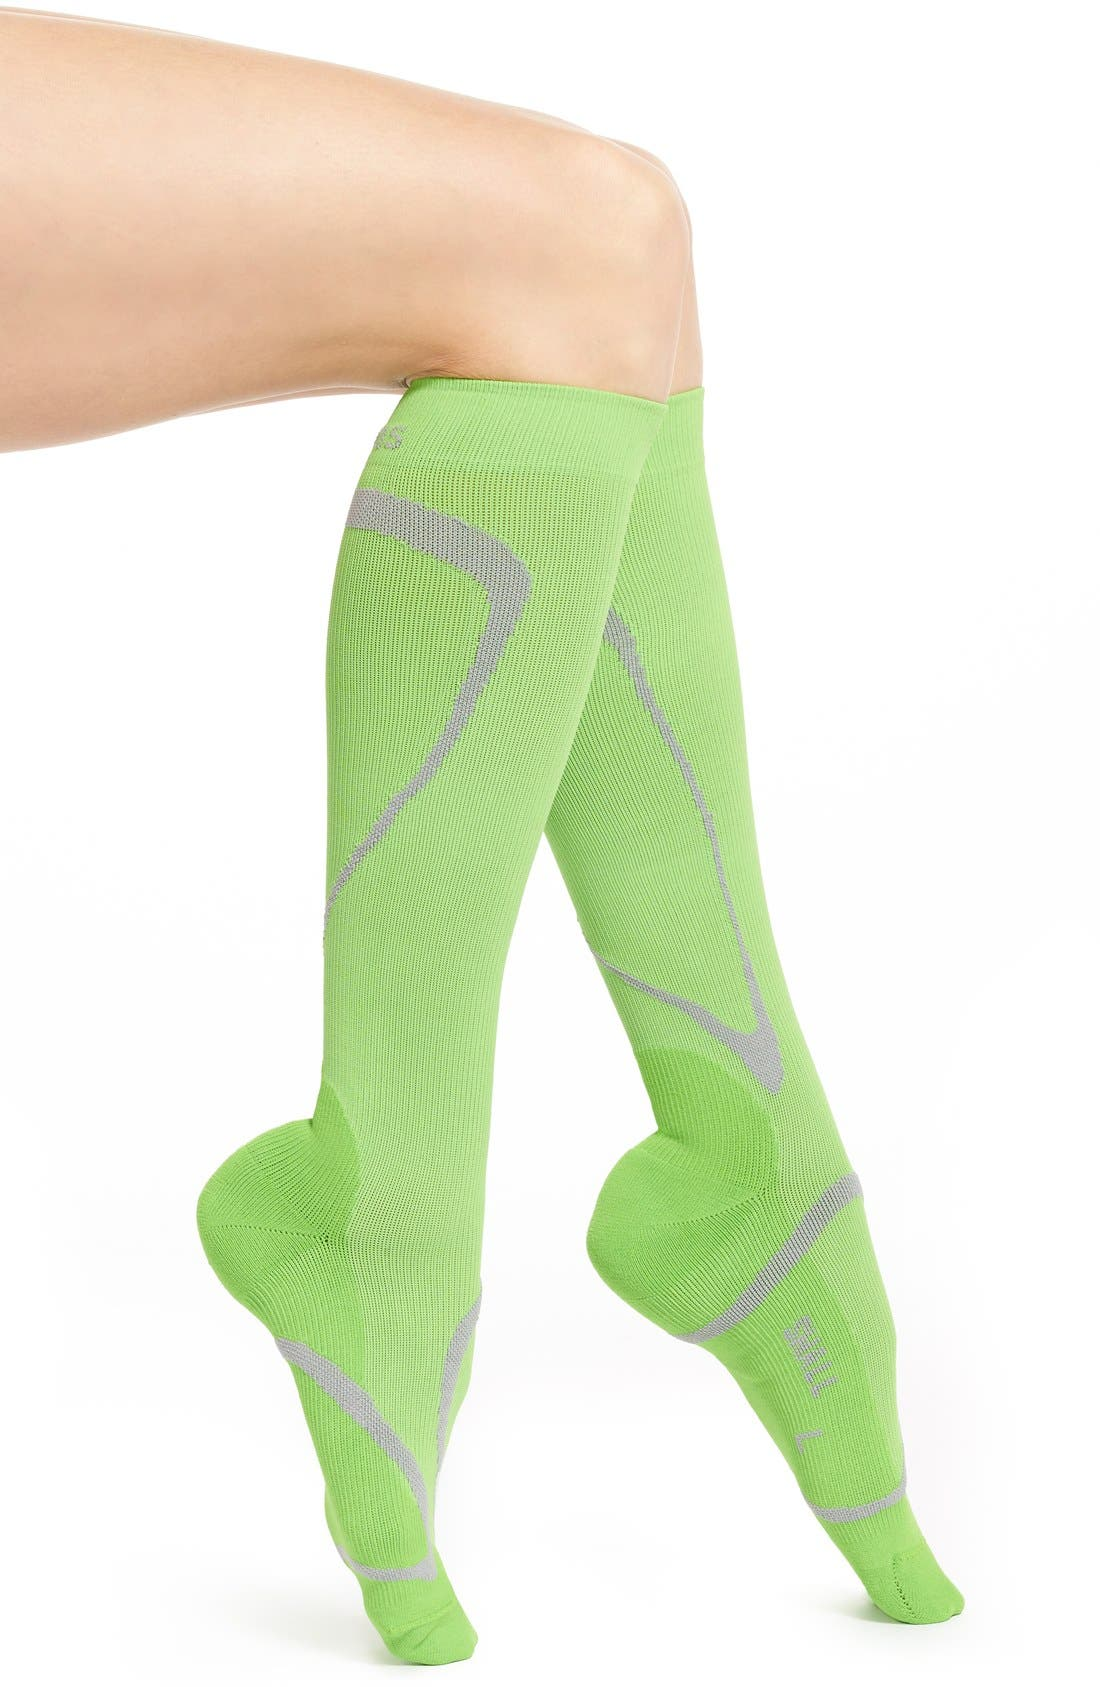 Performance Compression Knee High Socks,                             Main thumbnail 1, color,                             LIME